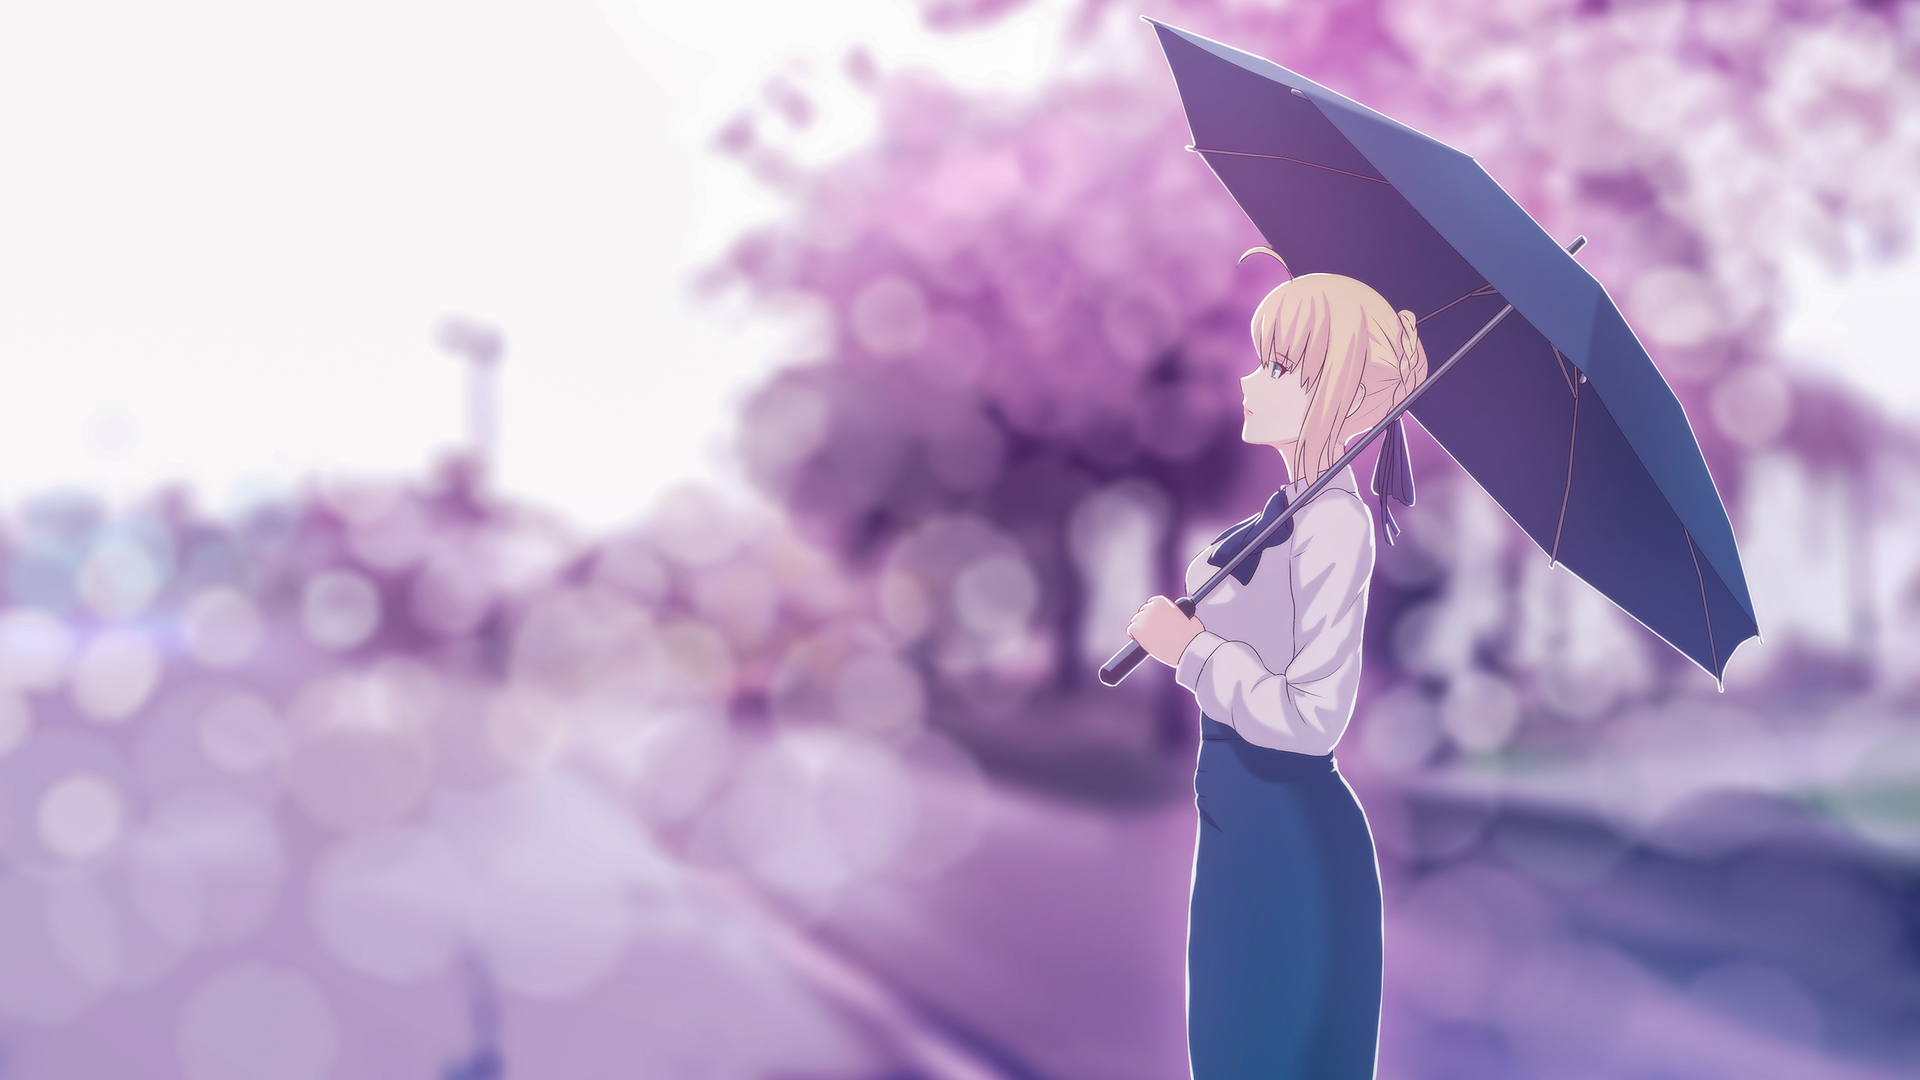 1920x1080 Saber Fate Stay Night Artwork Laptop Full Hd 1080p Hd 4k